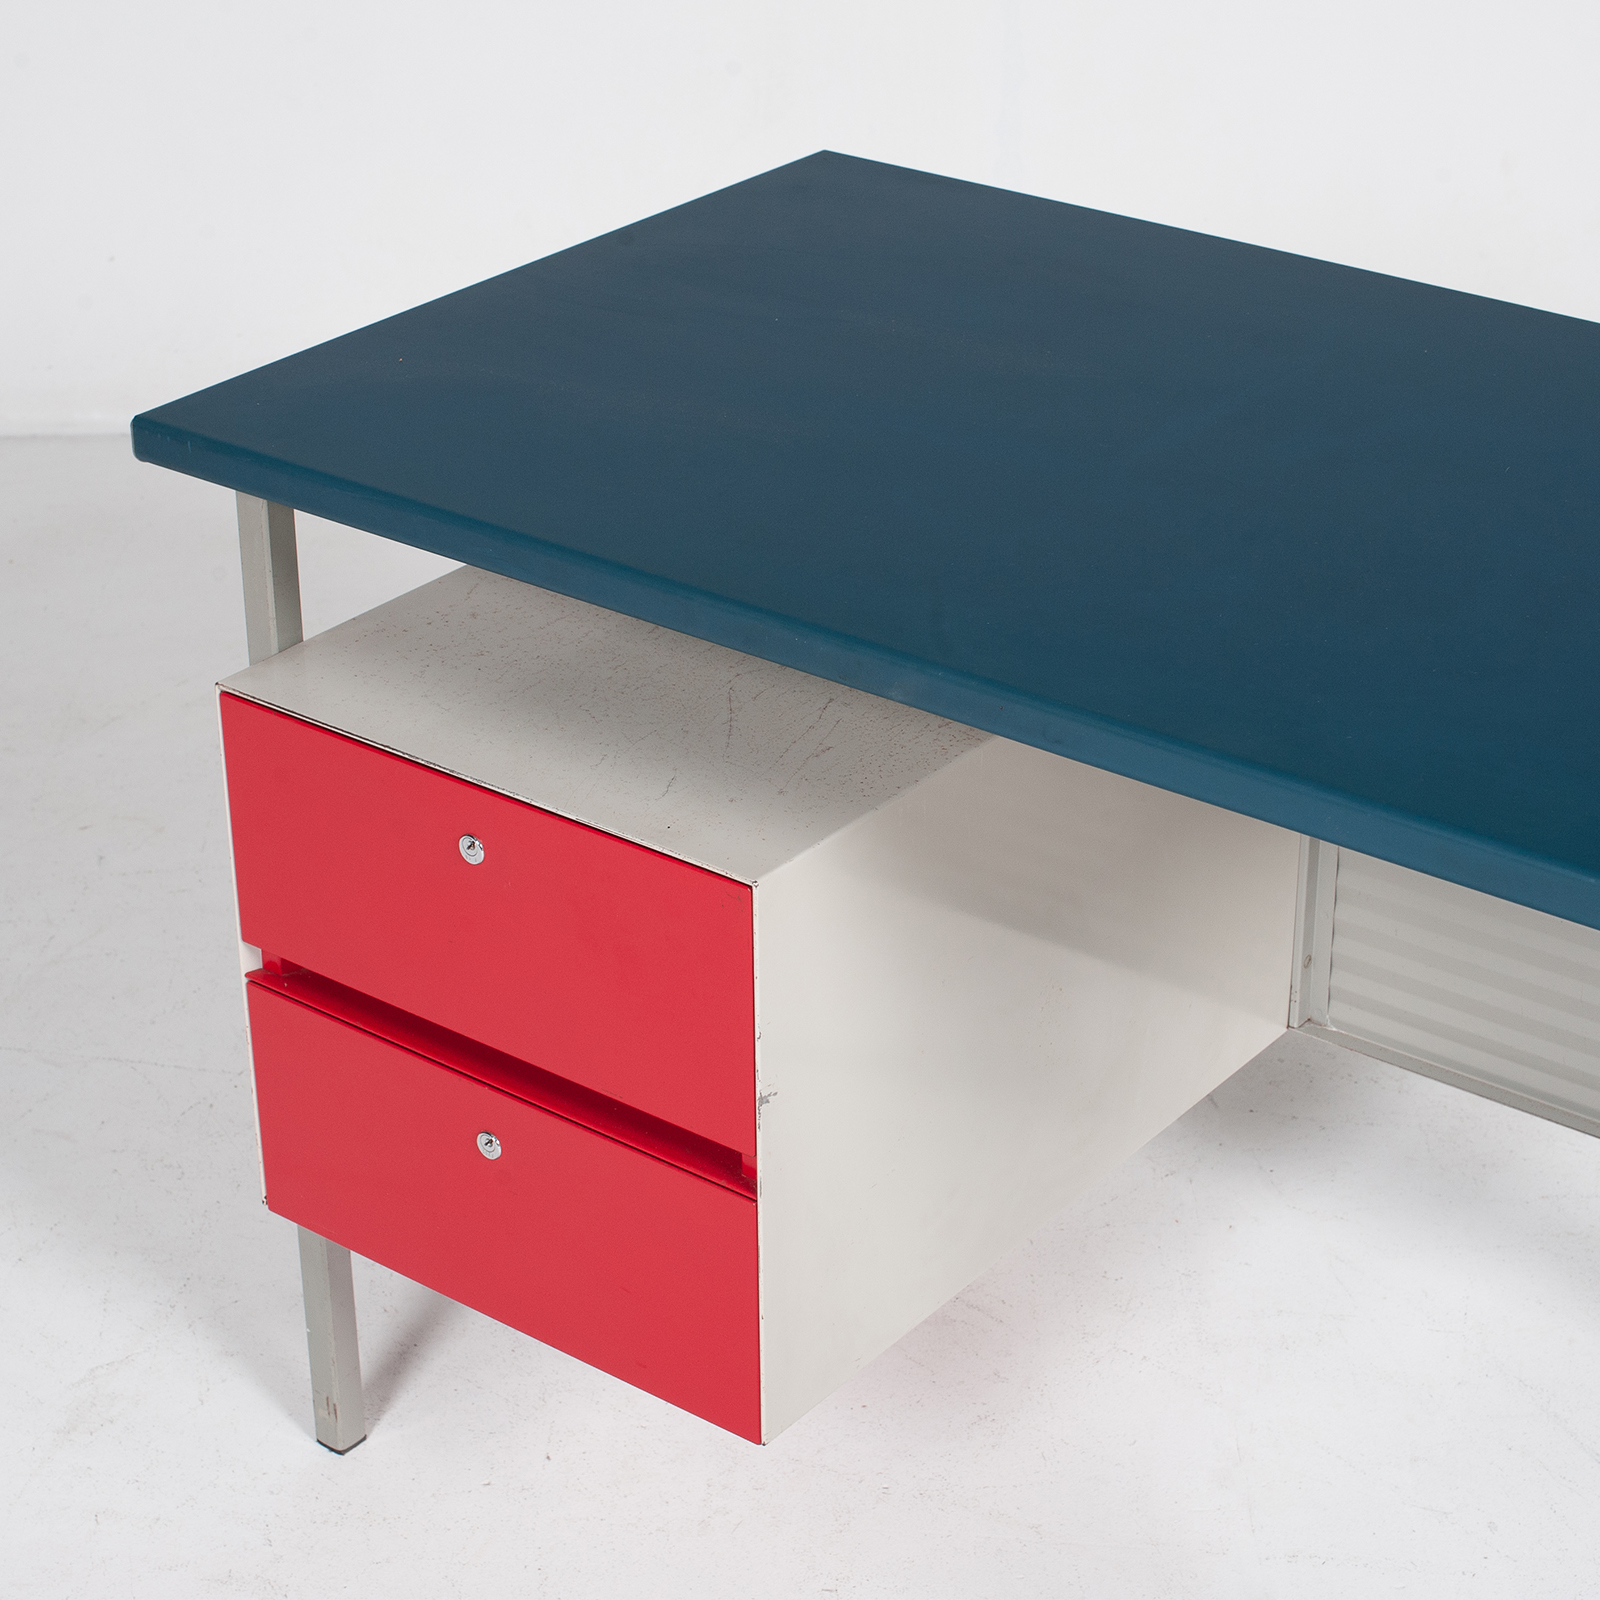 3803 Industrial Desk By Andre Cordemeyer For Gispen With Blue Vinyl Top And Red Enamelled Drawers, 1950s, The Netherlands 49